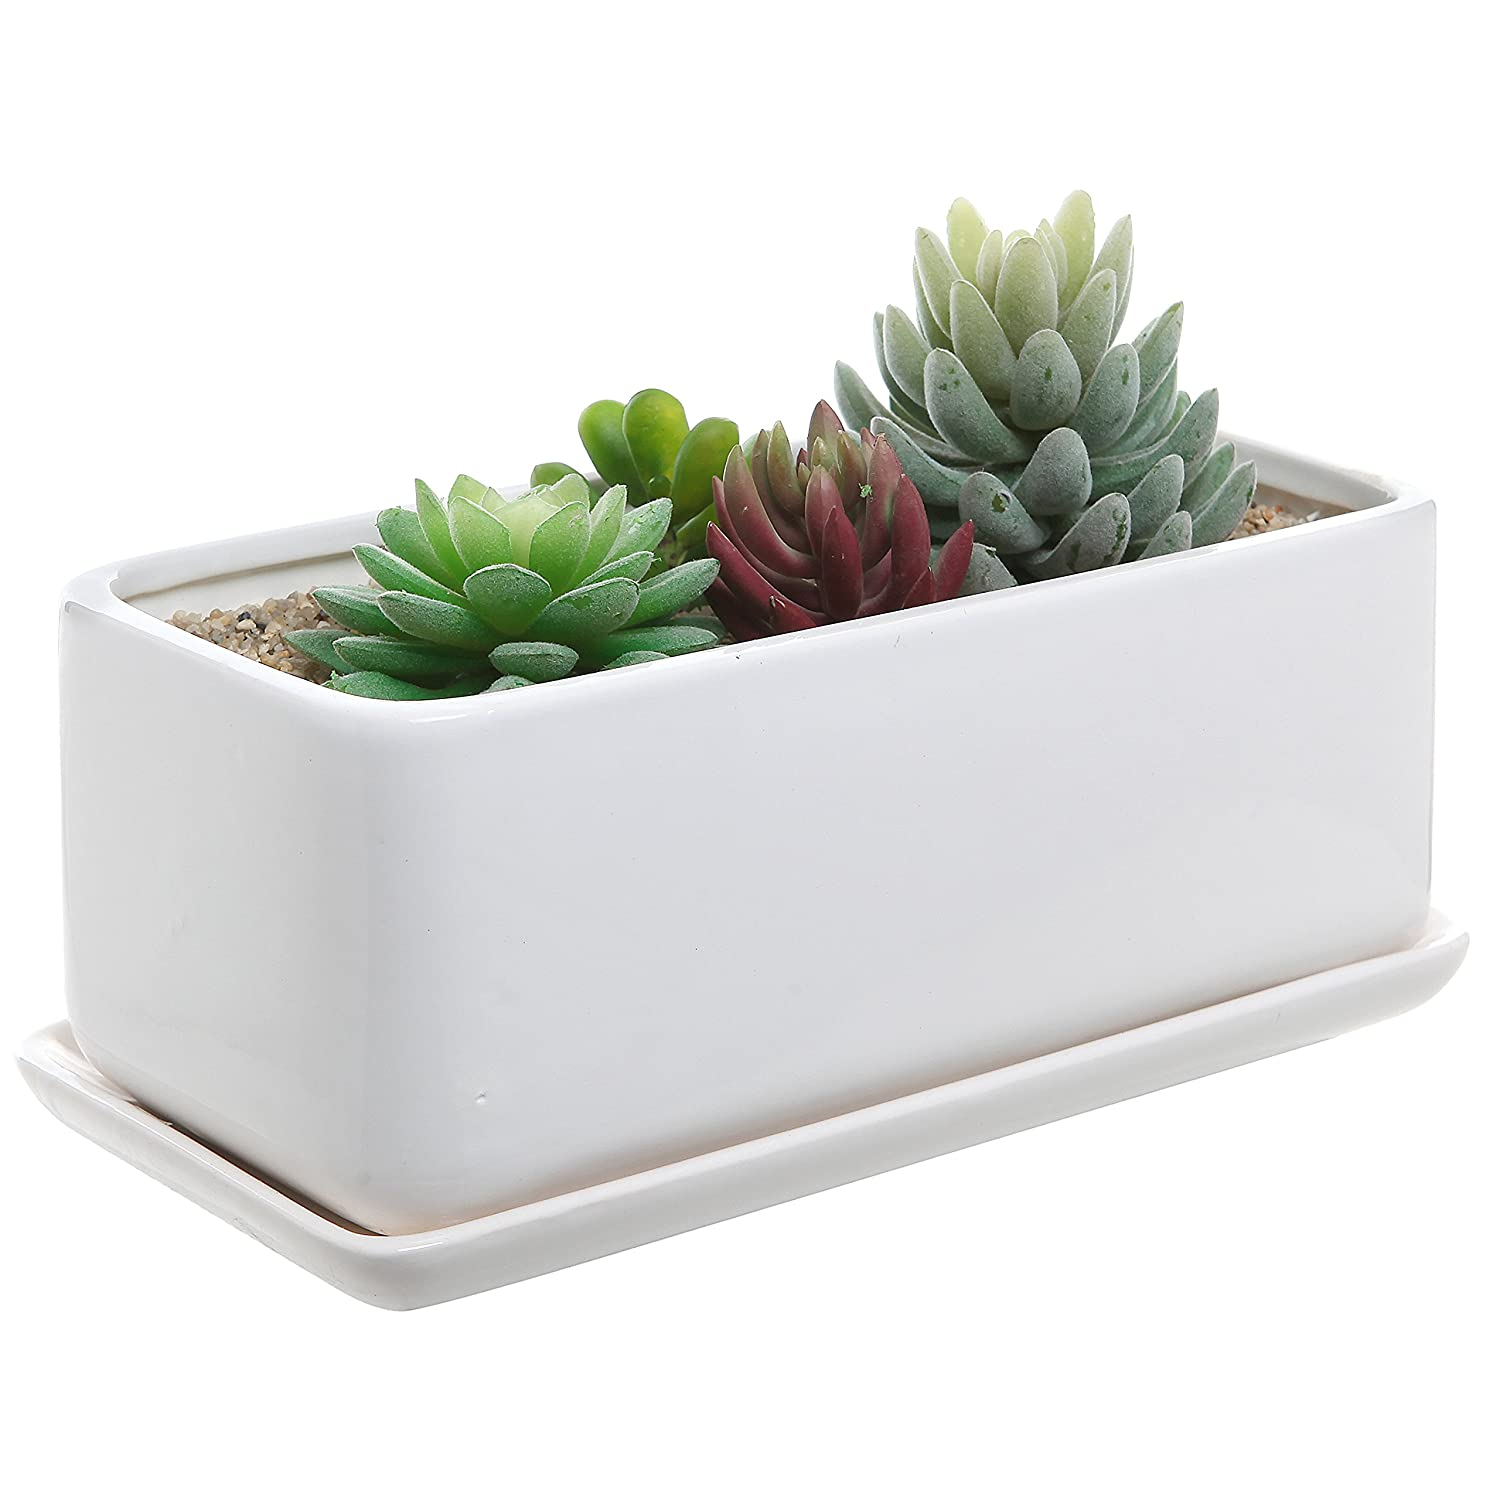 amazoncom   inch rectangular modern minimalist white ceramic  - amazoncom   inch rectangular modern minimalist white ceramic succulentplanter pot  window box with saucer  patio lawn  garden